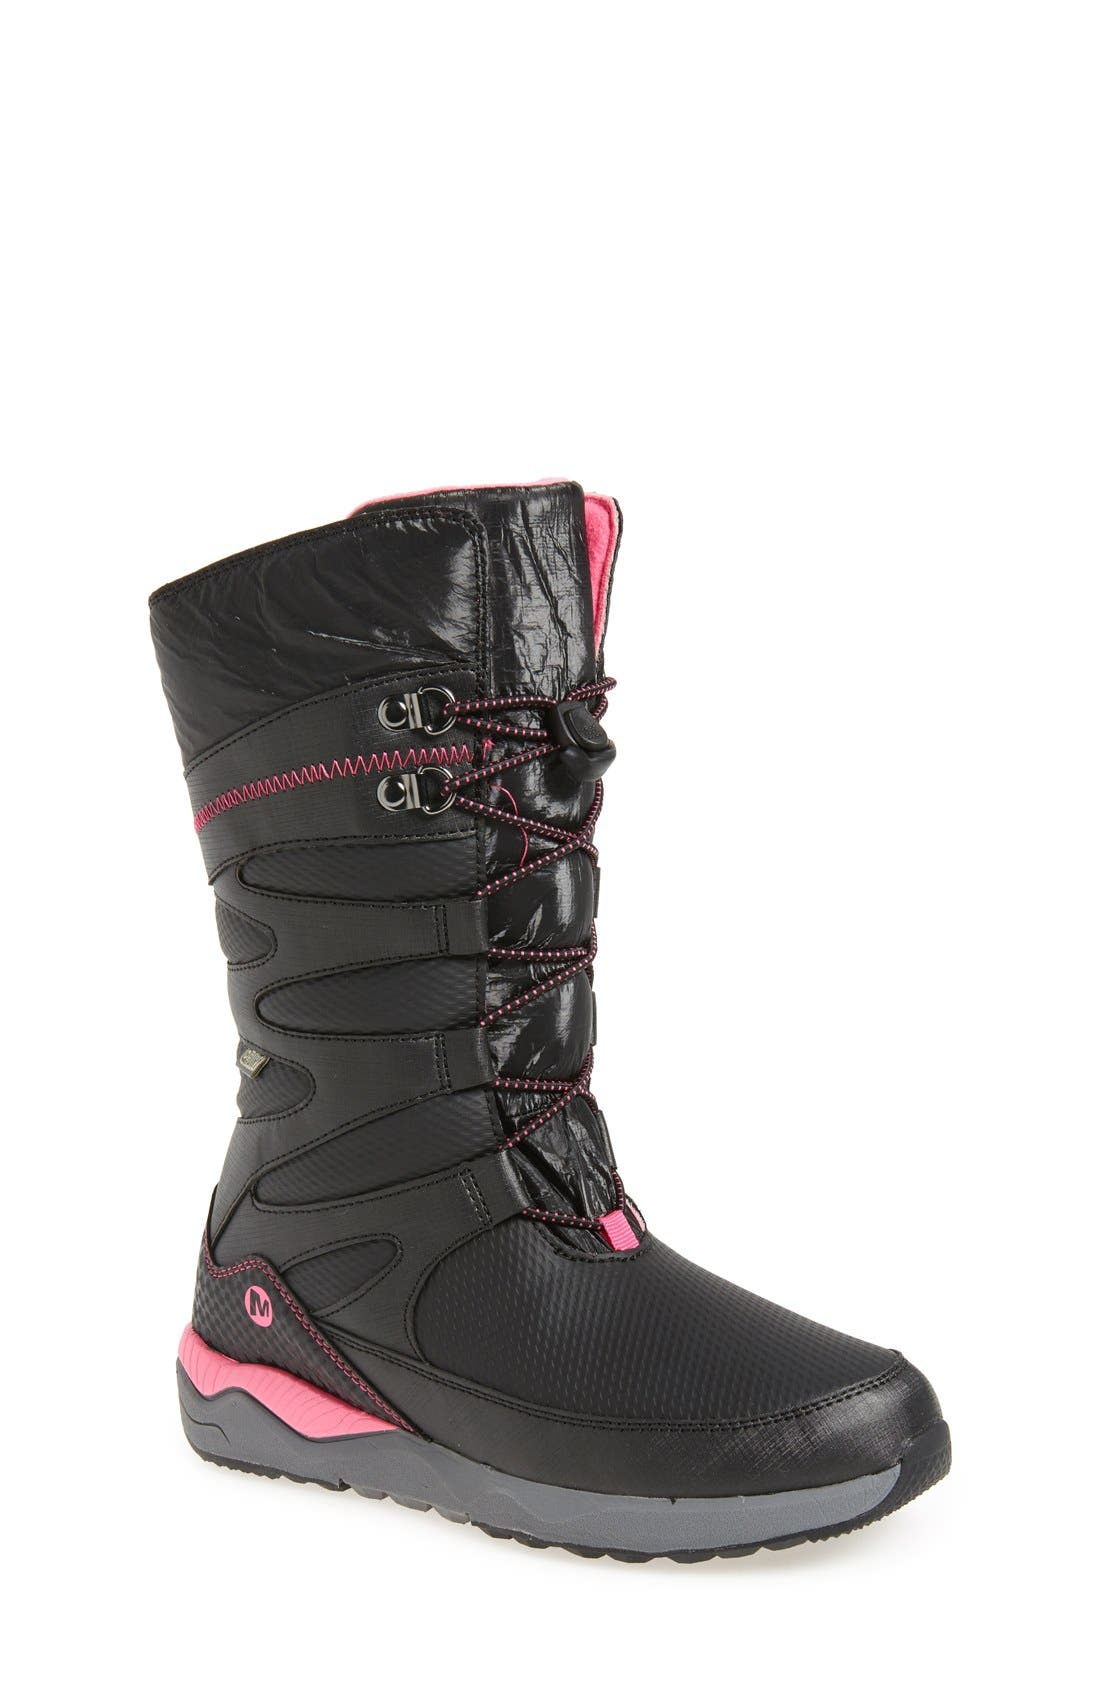 Alternate Image 1 Selected - Merrell 'Arctic Blast' Waterproof Snow Boot (Toddler, Little Kid & Big Kid)